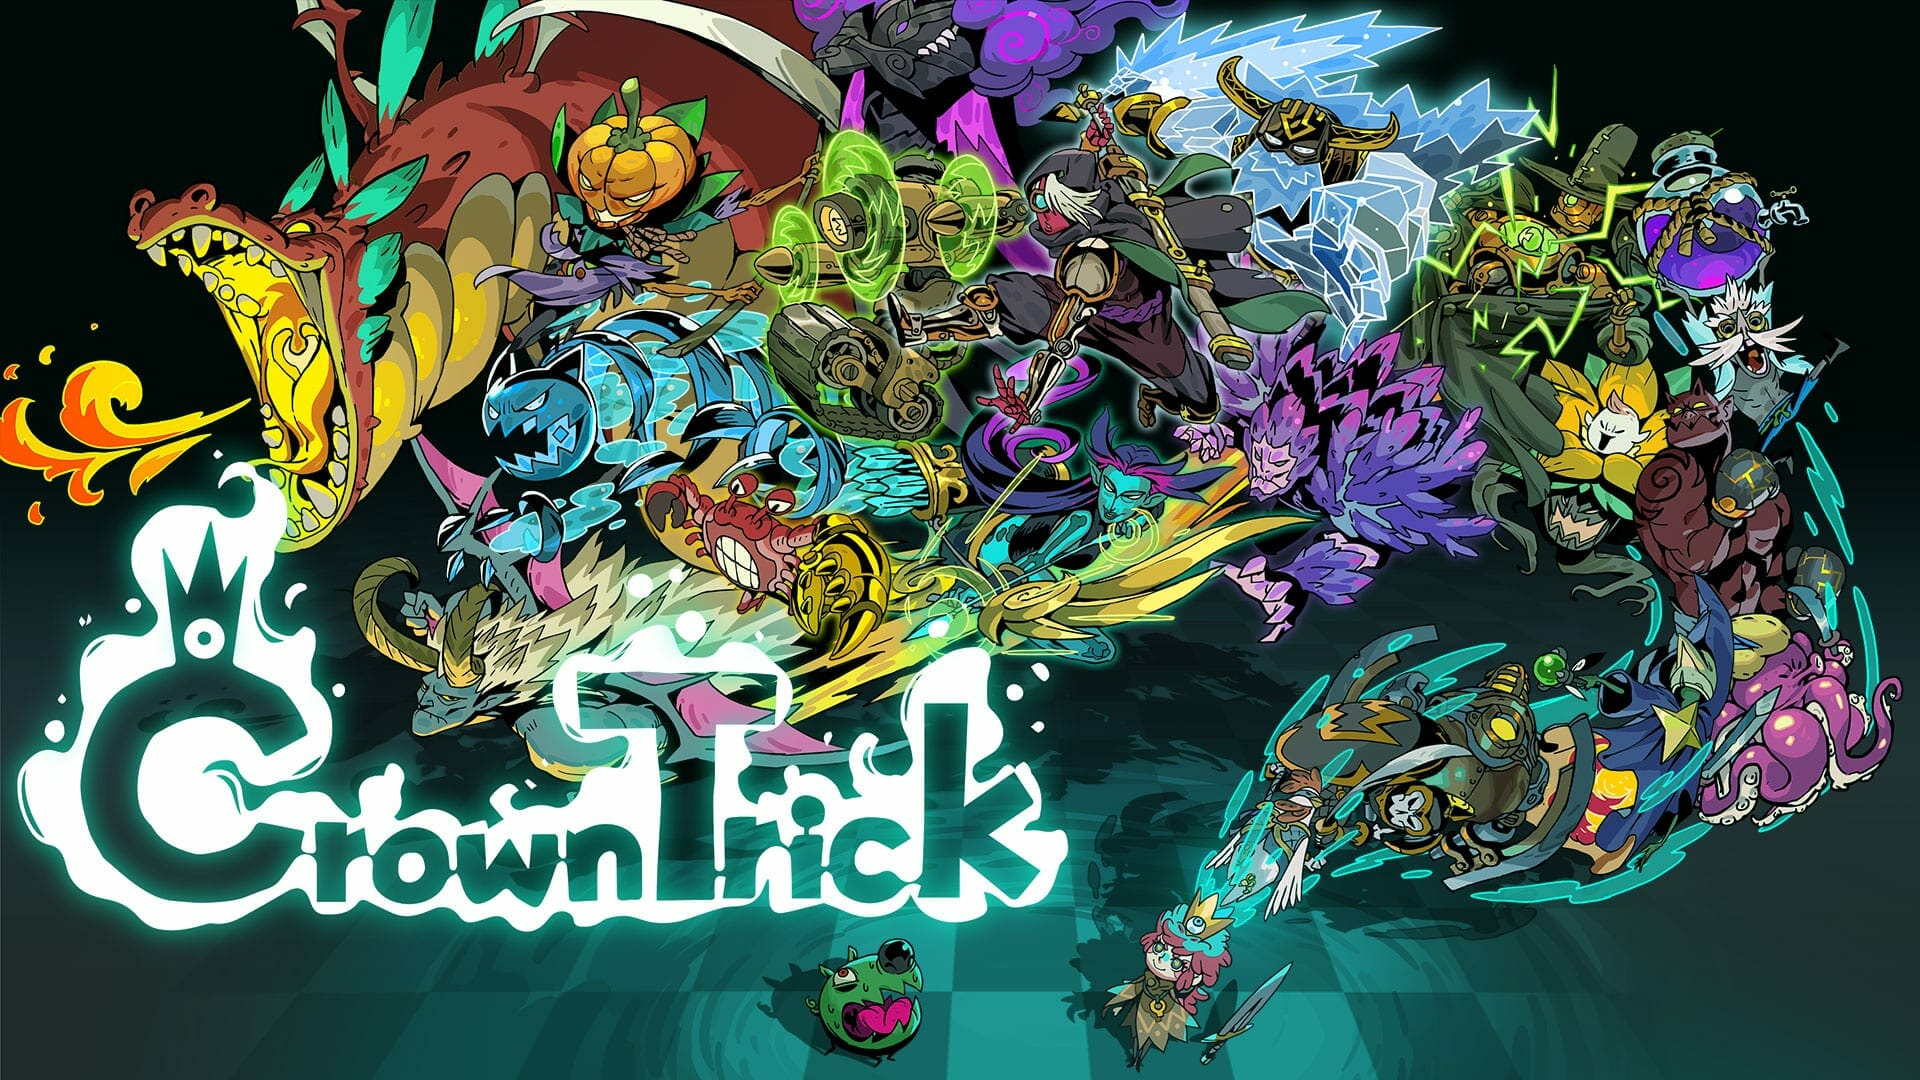 Crown Trick Release Date